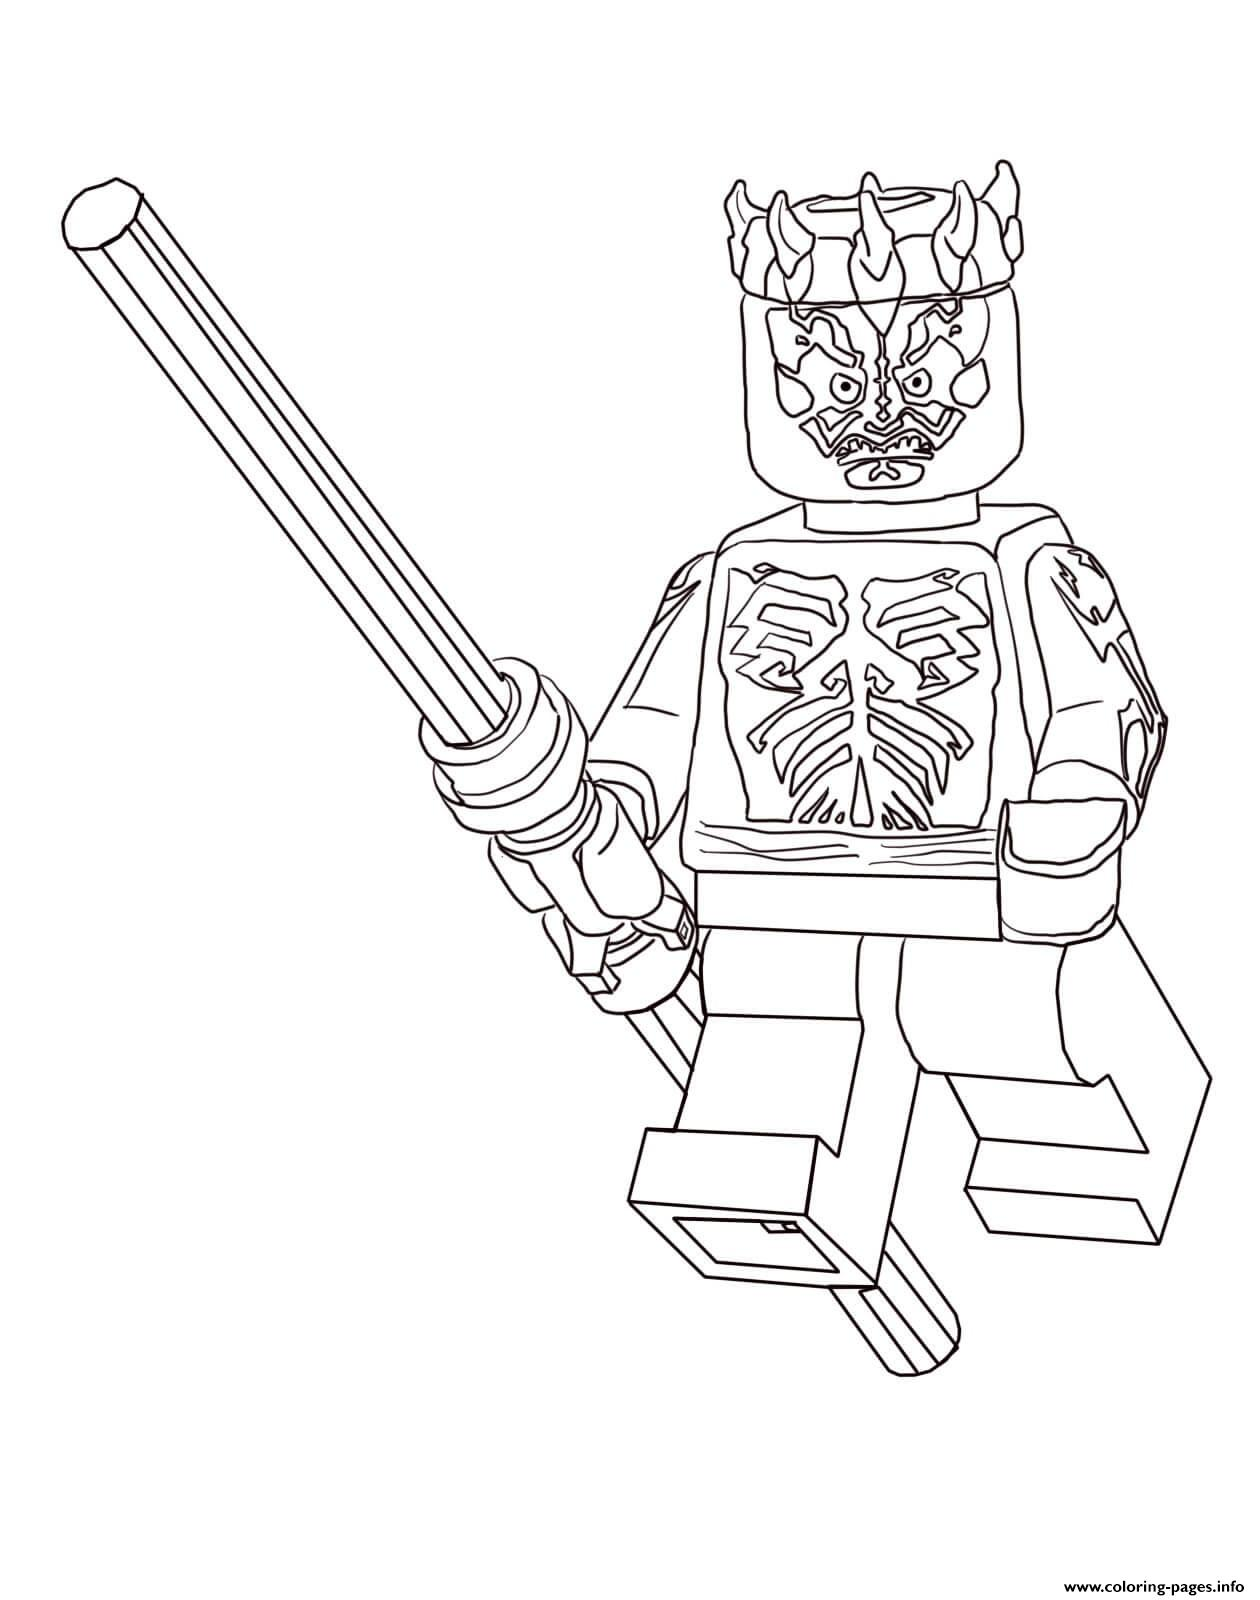 Lego Star Wars Darth Maul Coloring Pages Print Download 351 Prints